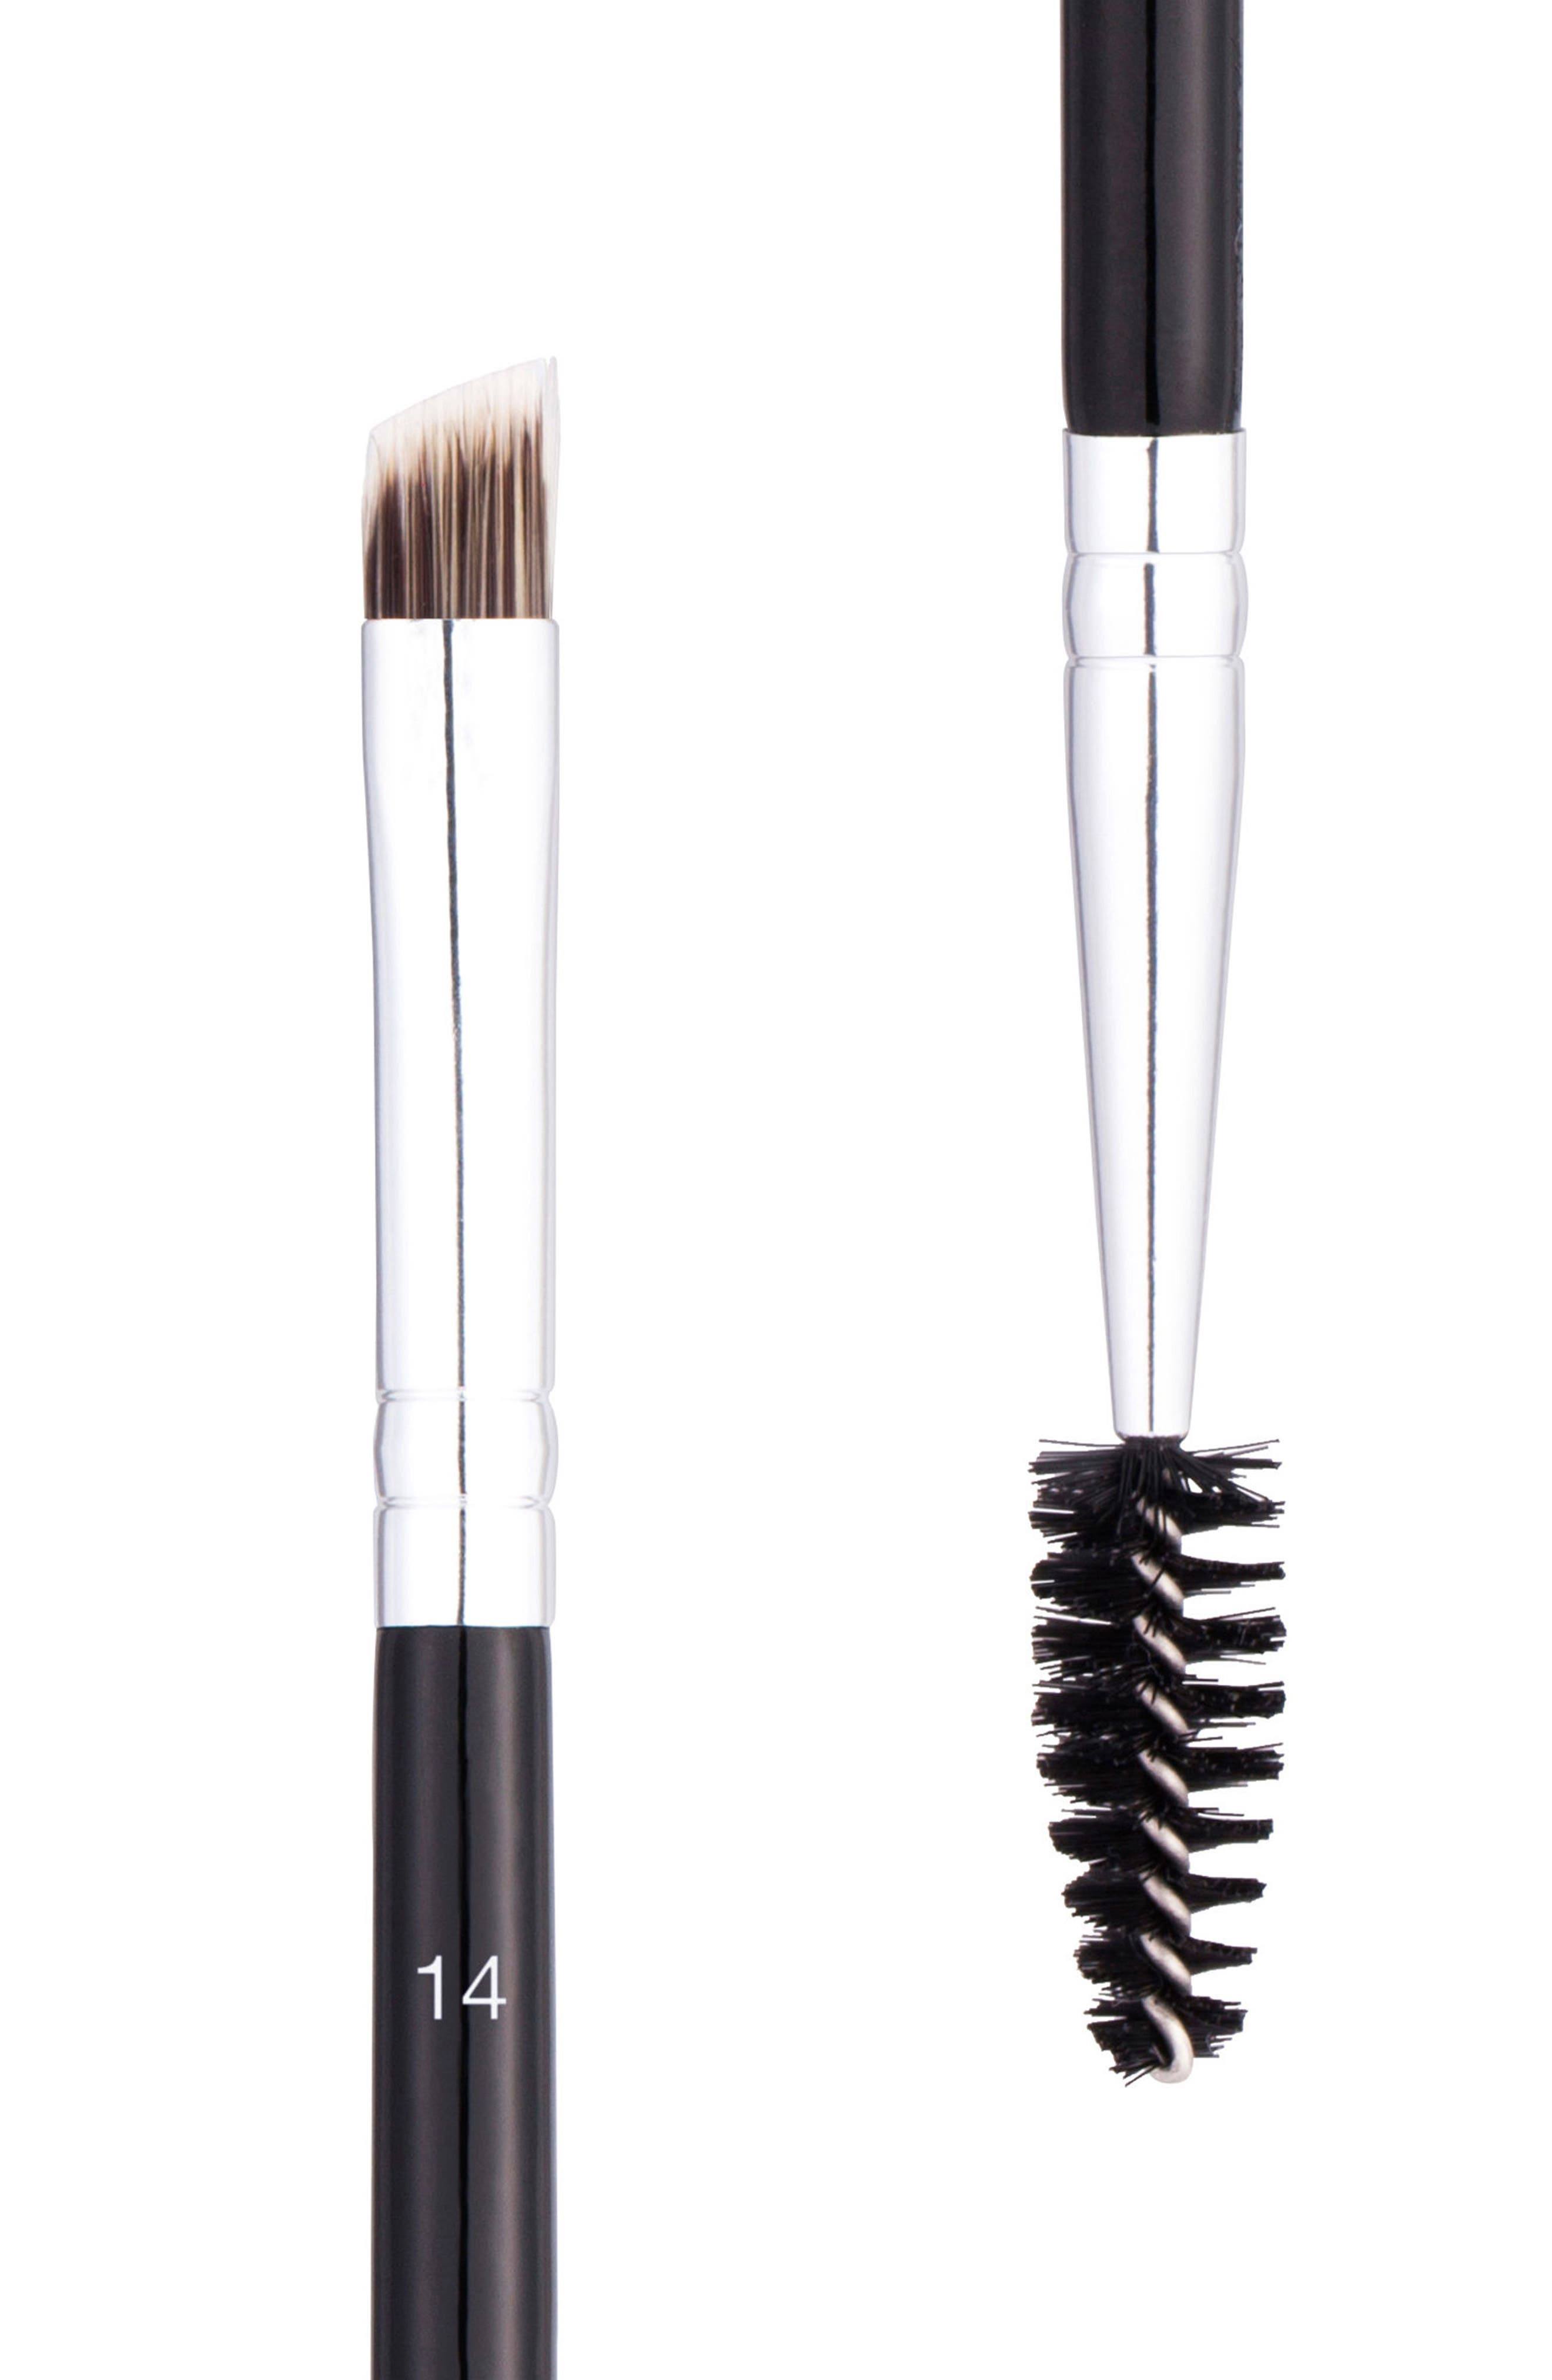 #14 Dual-Sided Brow & Eyeliner Brush,                             Alternate thumbnail 2, color,                             NO COLOR